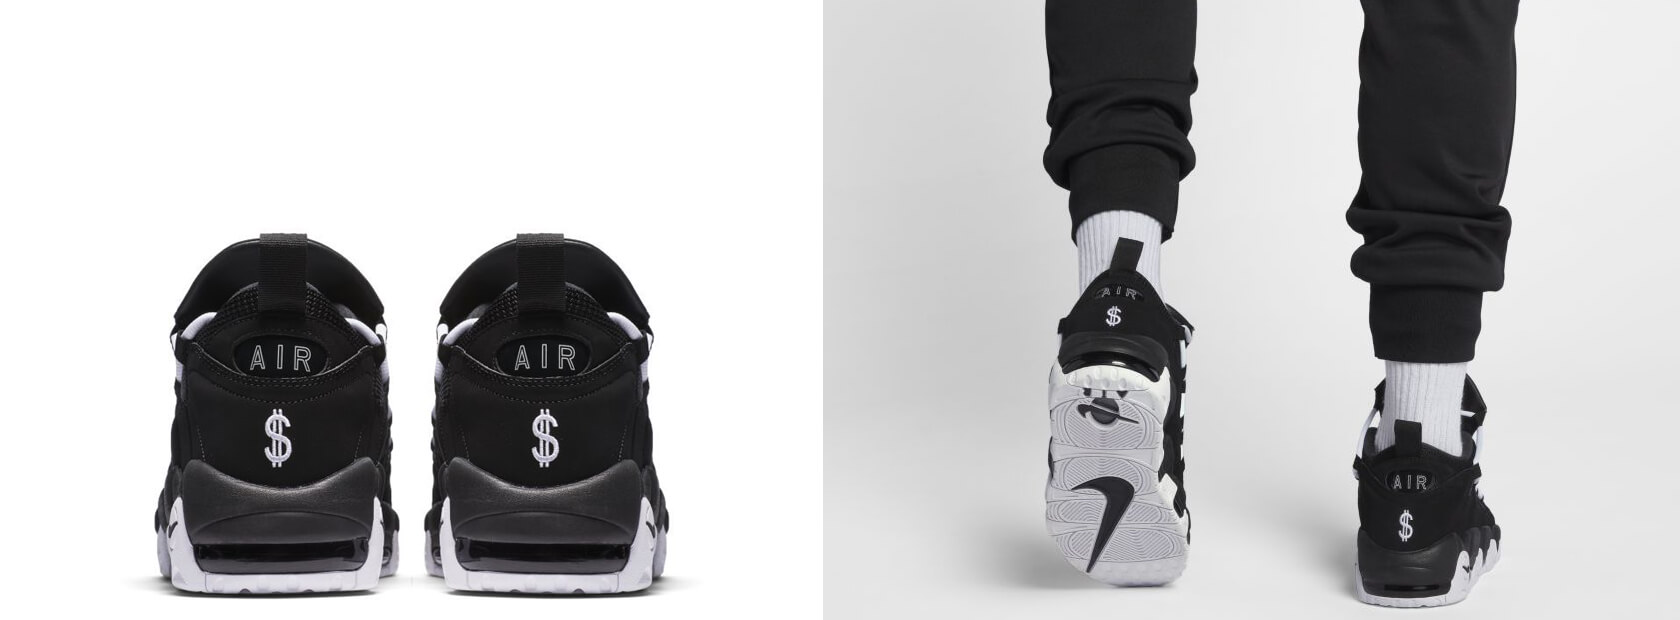 Nike Air More Money - Black / White